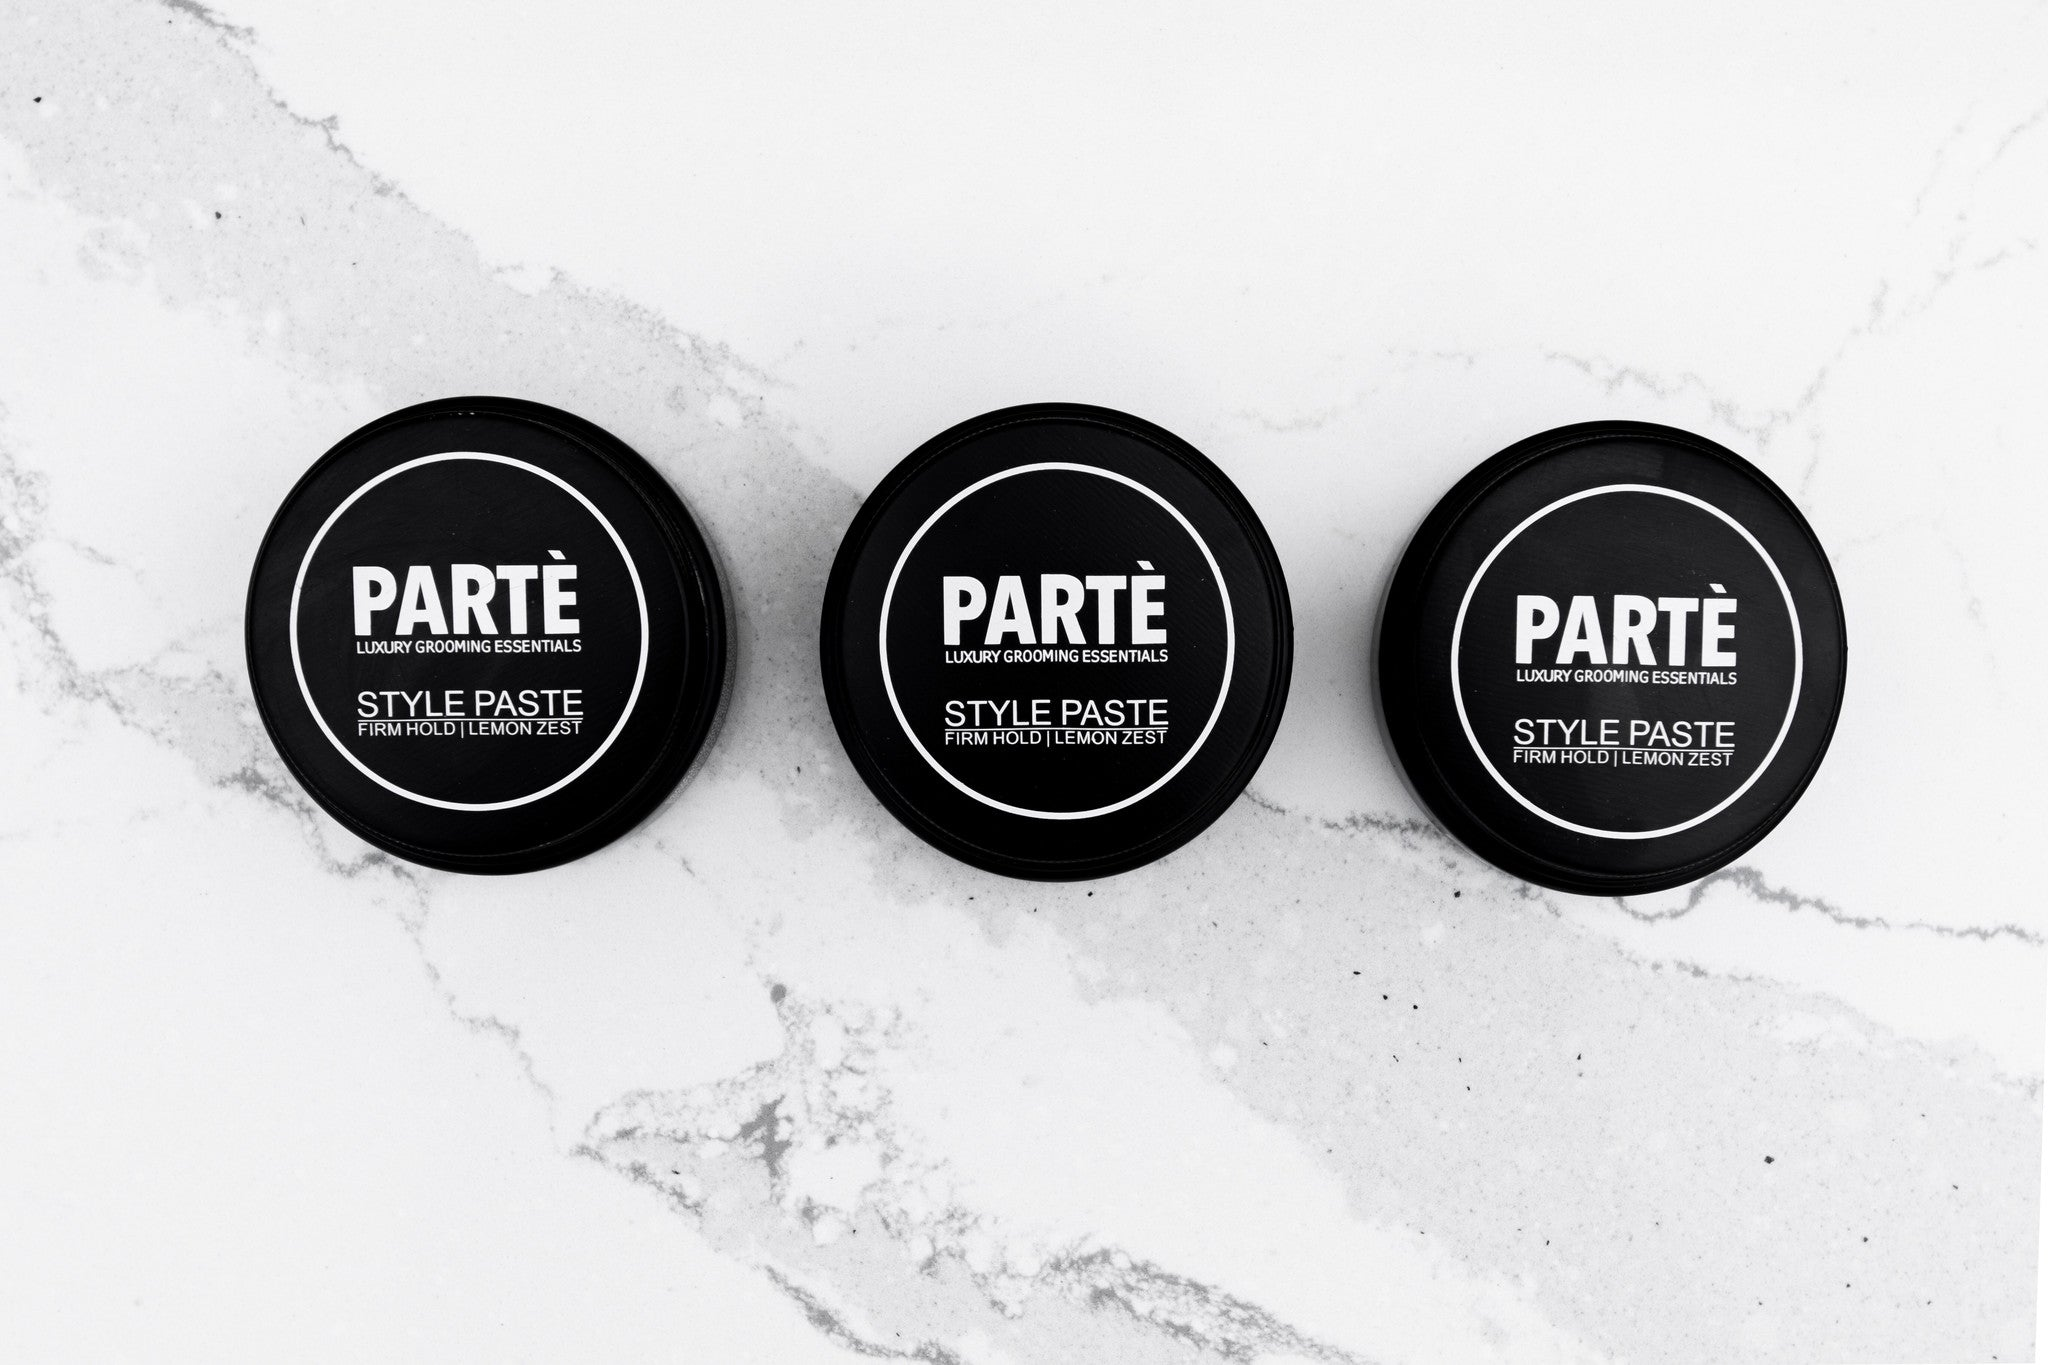 STYLE PASTE by PARTÈ COMPANY Men's Hair Styling Matte Clay Paste + FREE SHIPPING IN THE US